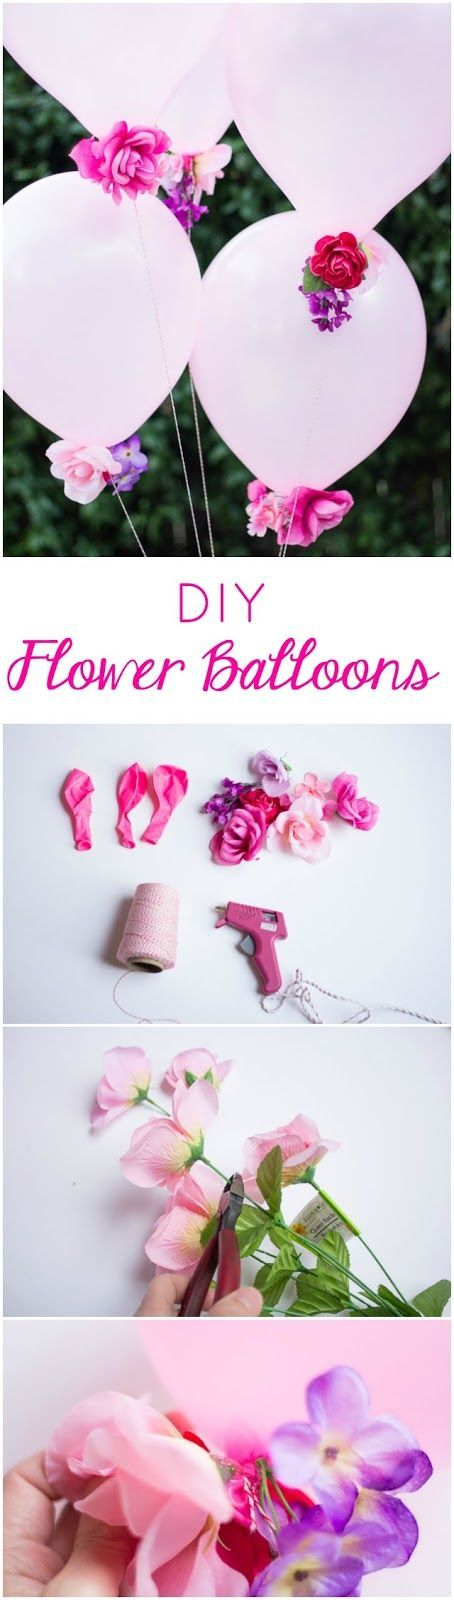 Fantasy Flower Balloons | Flower Balloons, Diy Party Decorations And DIY  Party